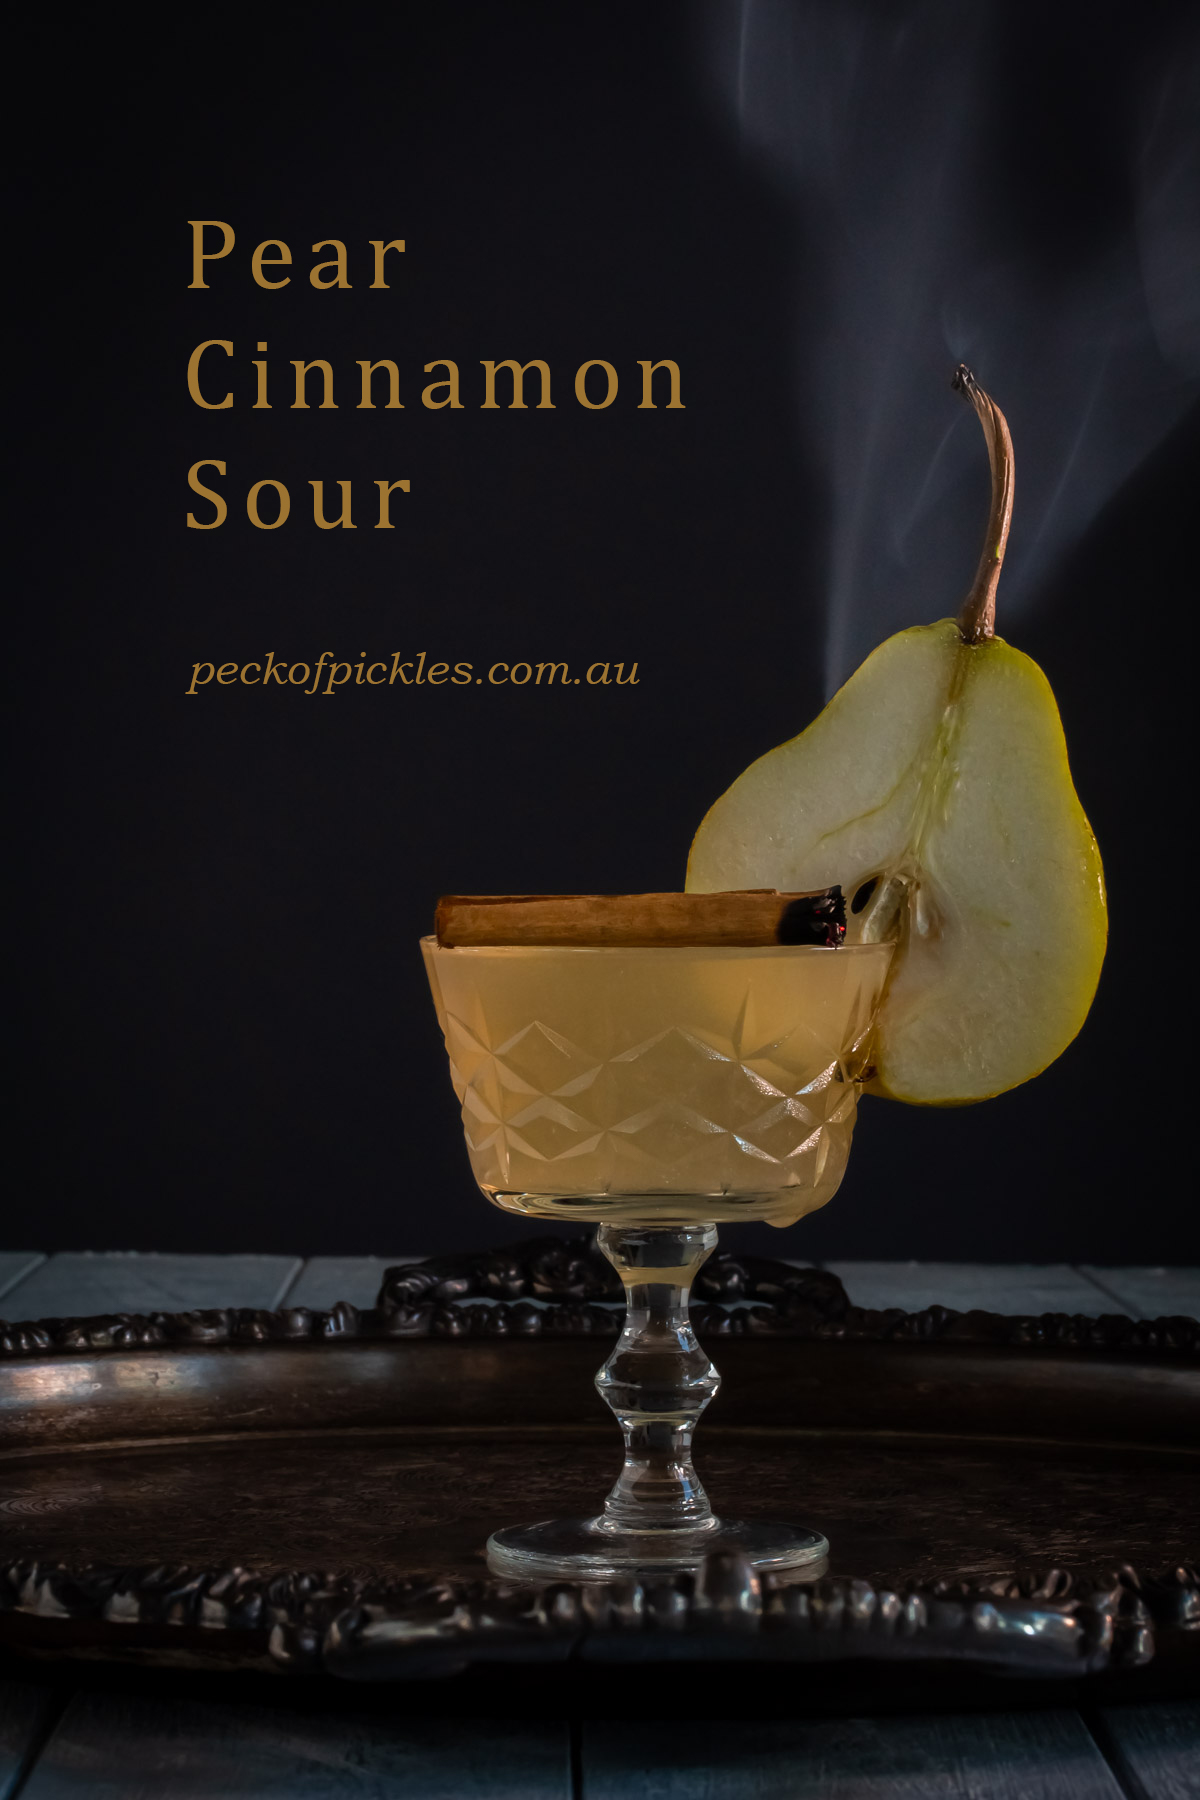 pear cinnamon sour on silver tray with pear slice and cinnamon smoke